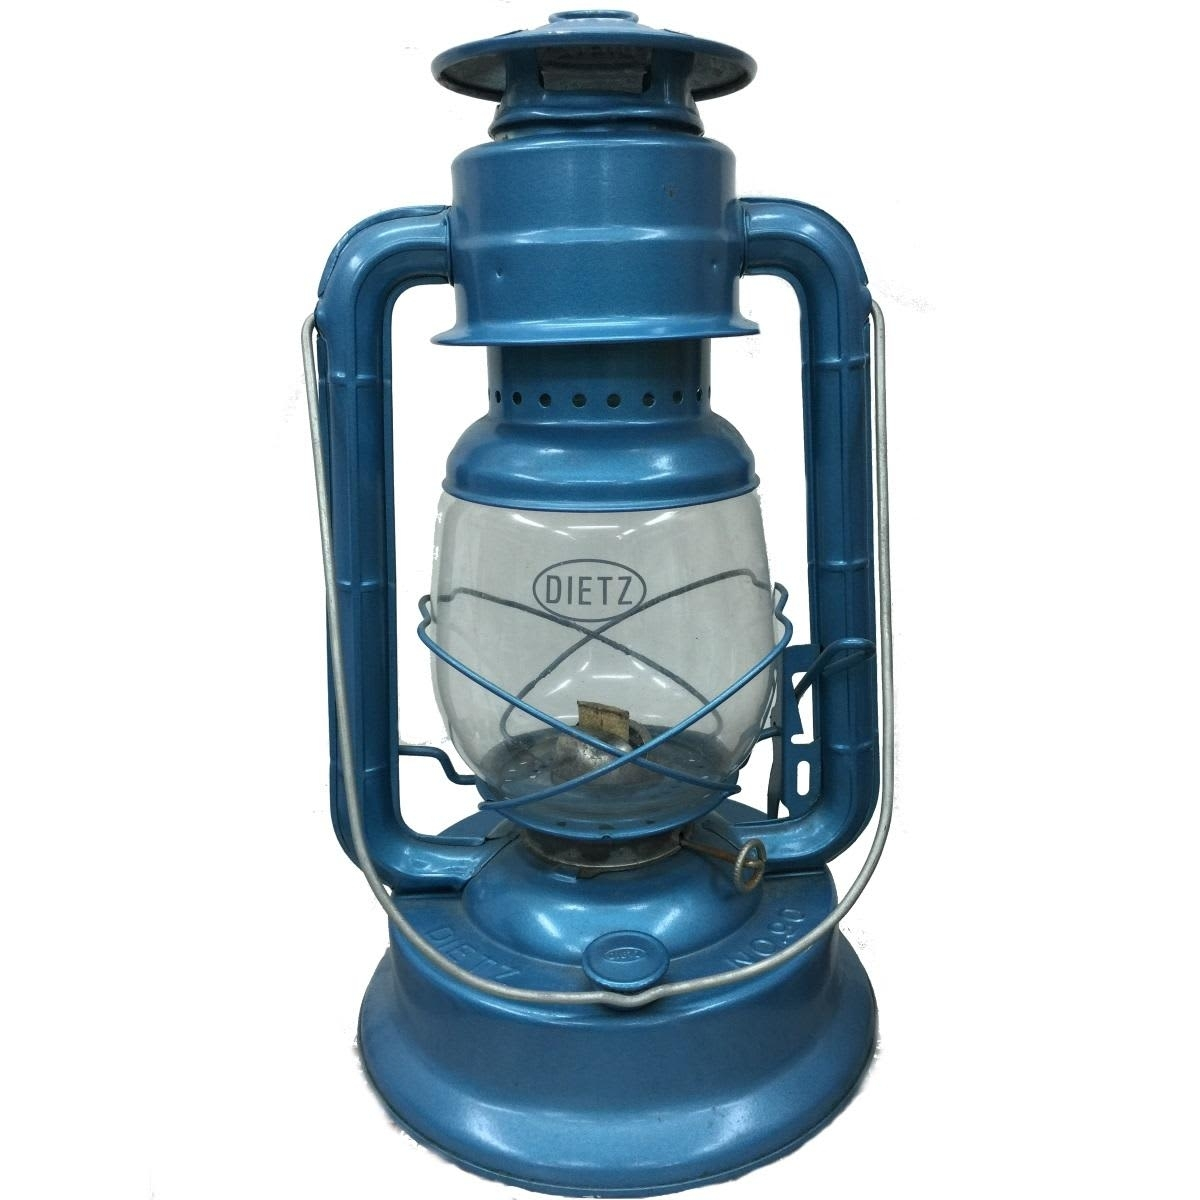 Dietz Kerosene Lantern Large with Outdoor Kerosene Lanterns (Image 9 of 20)